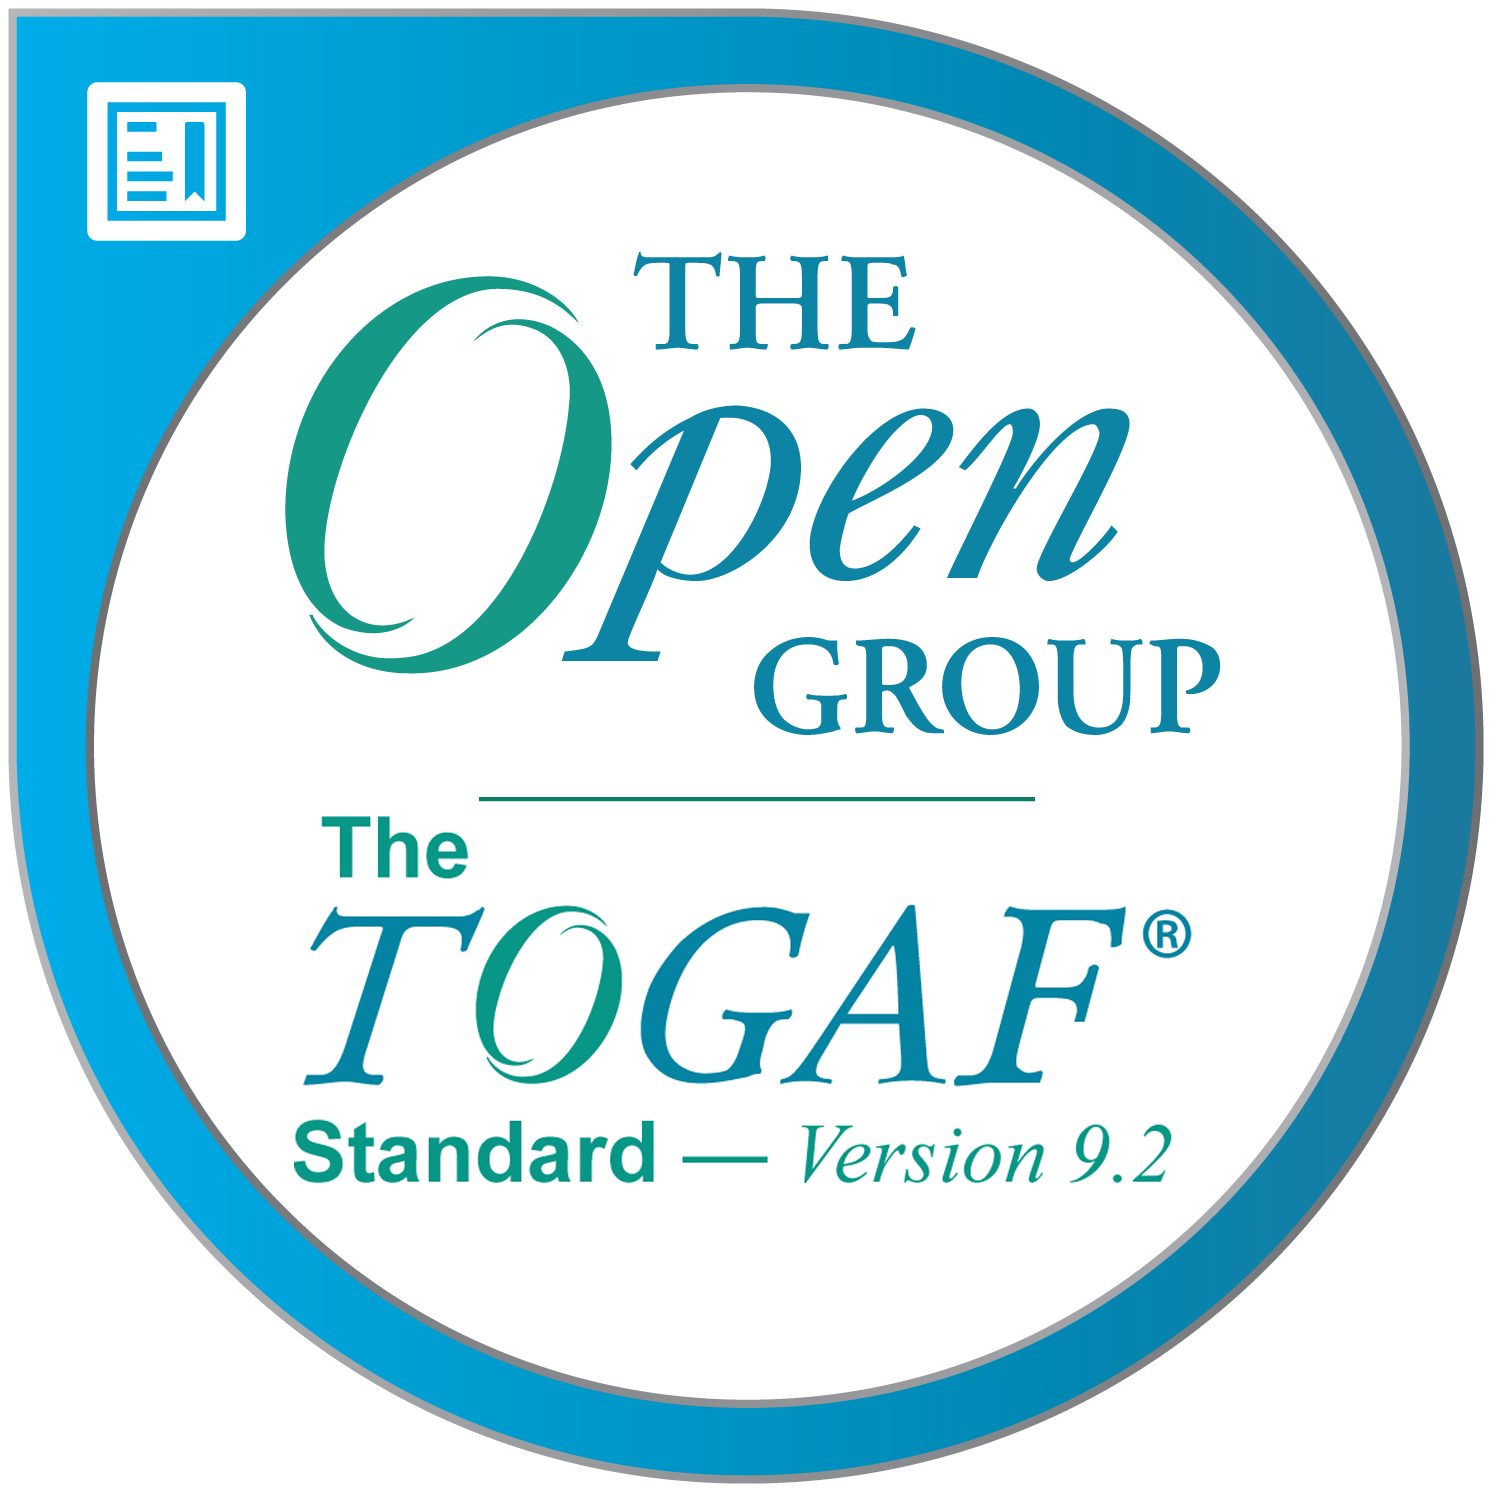 TOGAF 9.2 badge training certification